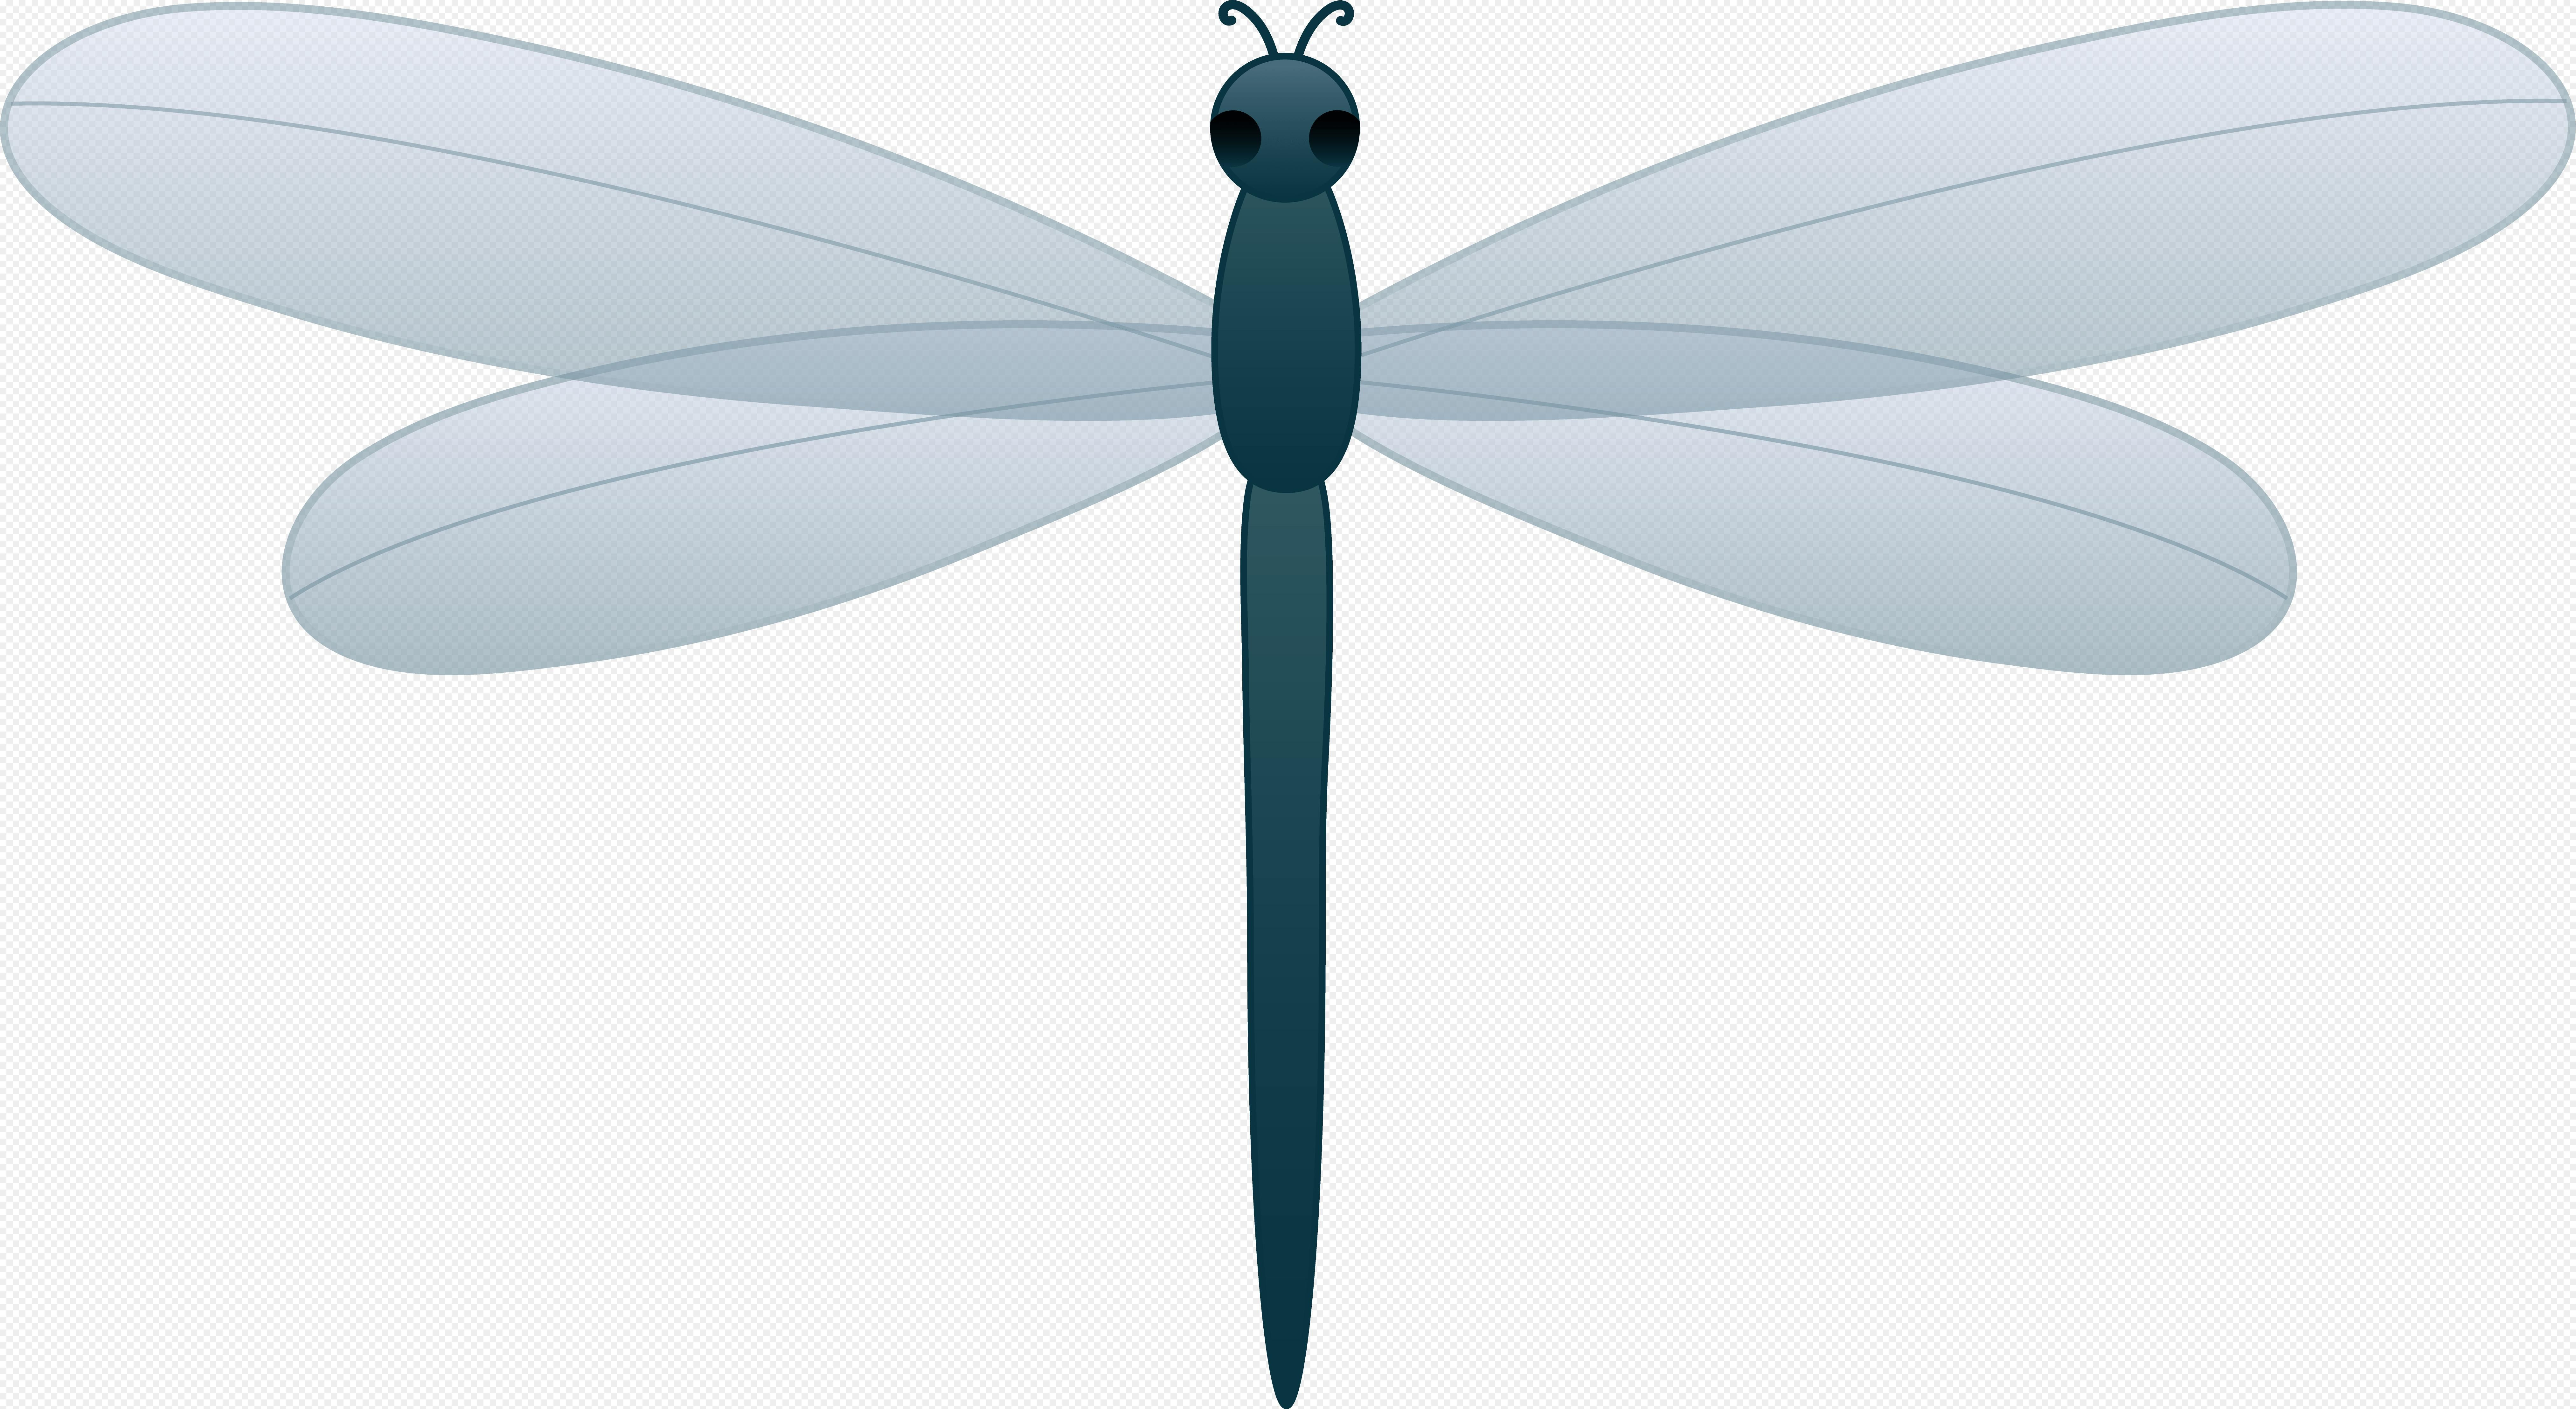 Dragonfly Drawing Png Free Dragonfly Clipart Pictures Clipartix 577 425 Png Download Free Transpa Dragonfly Drawing Dragonfly Clipart Dragonfly Symbolism